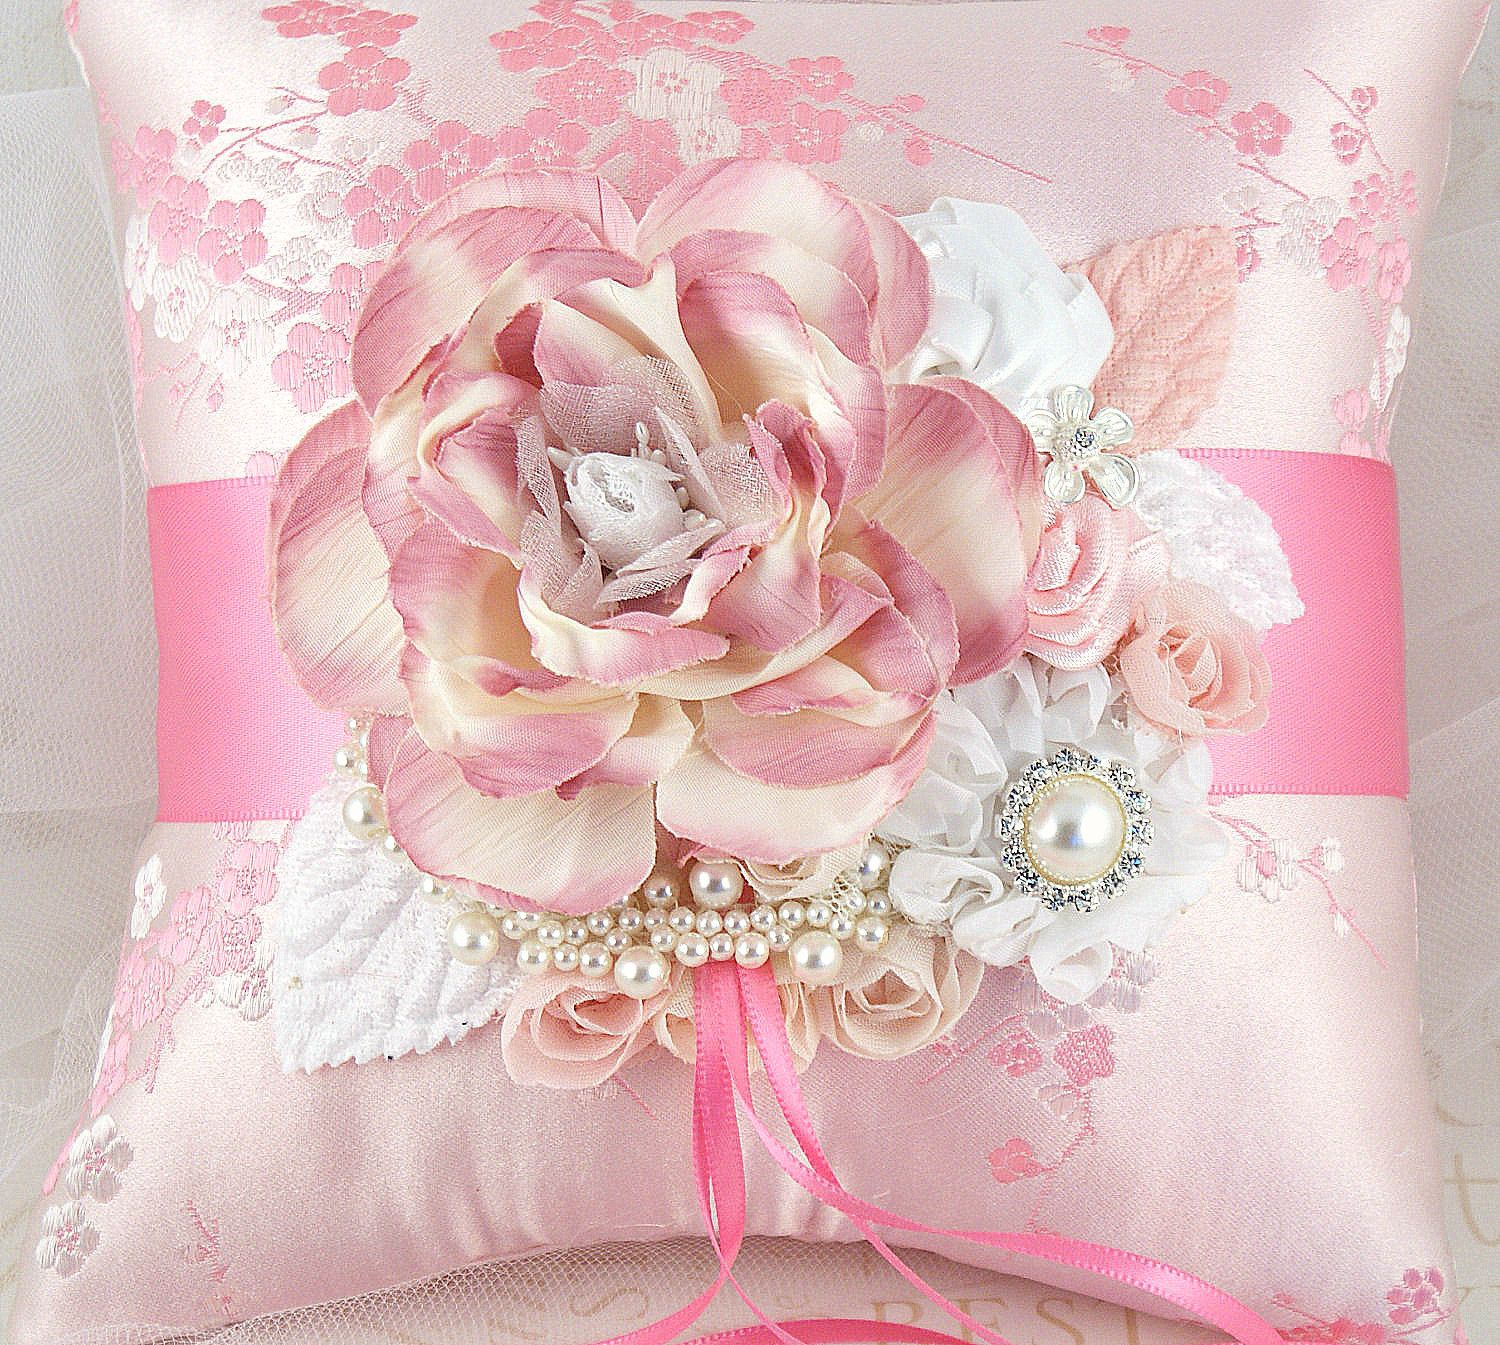 Bridal Ring Bearer Pillow in Pink, White and Cream with Embroidered ...